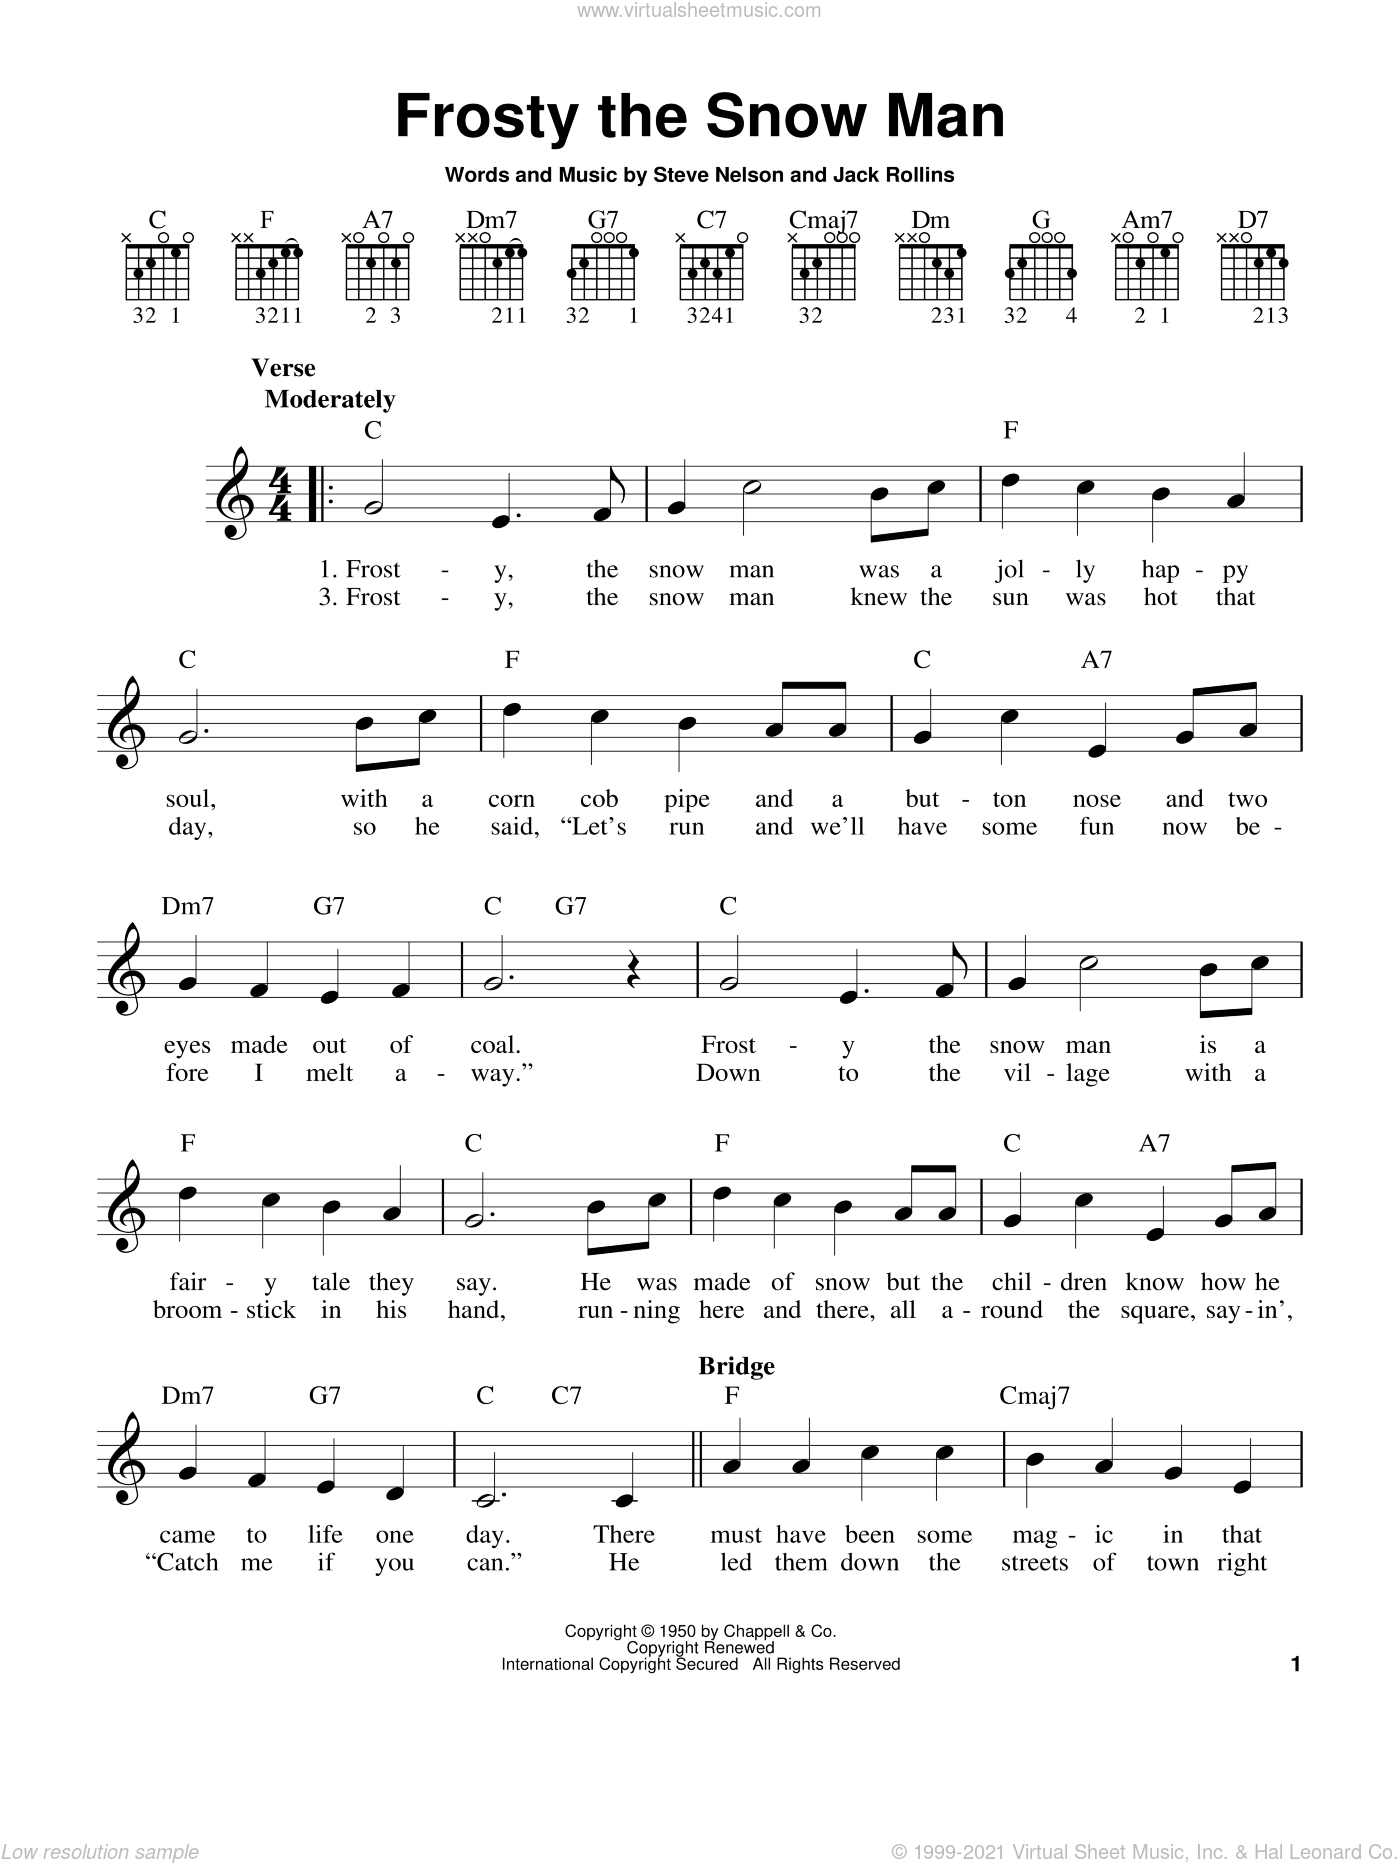 Frosty The Snow Man sheet music for guitar solo (chords) by Steve Nelson